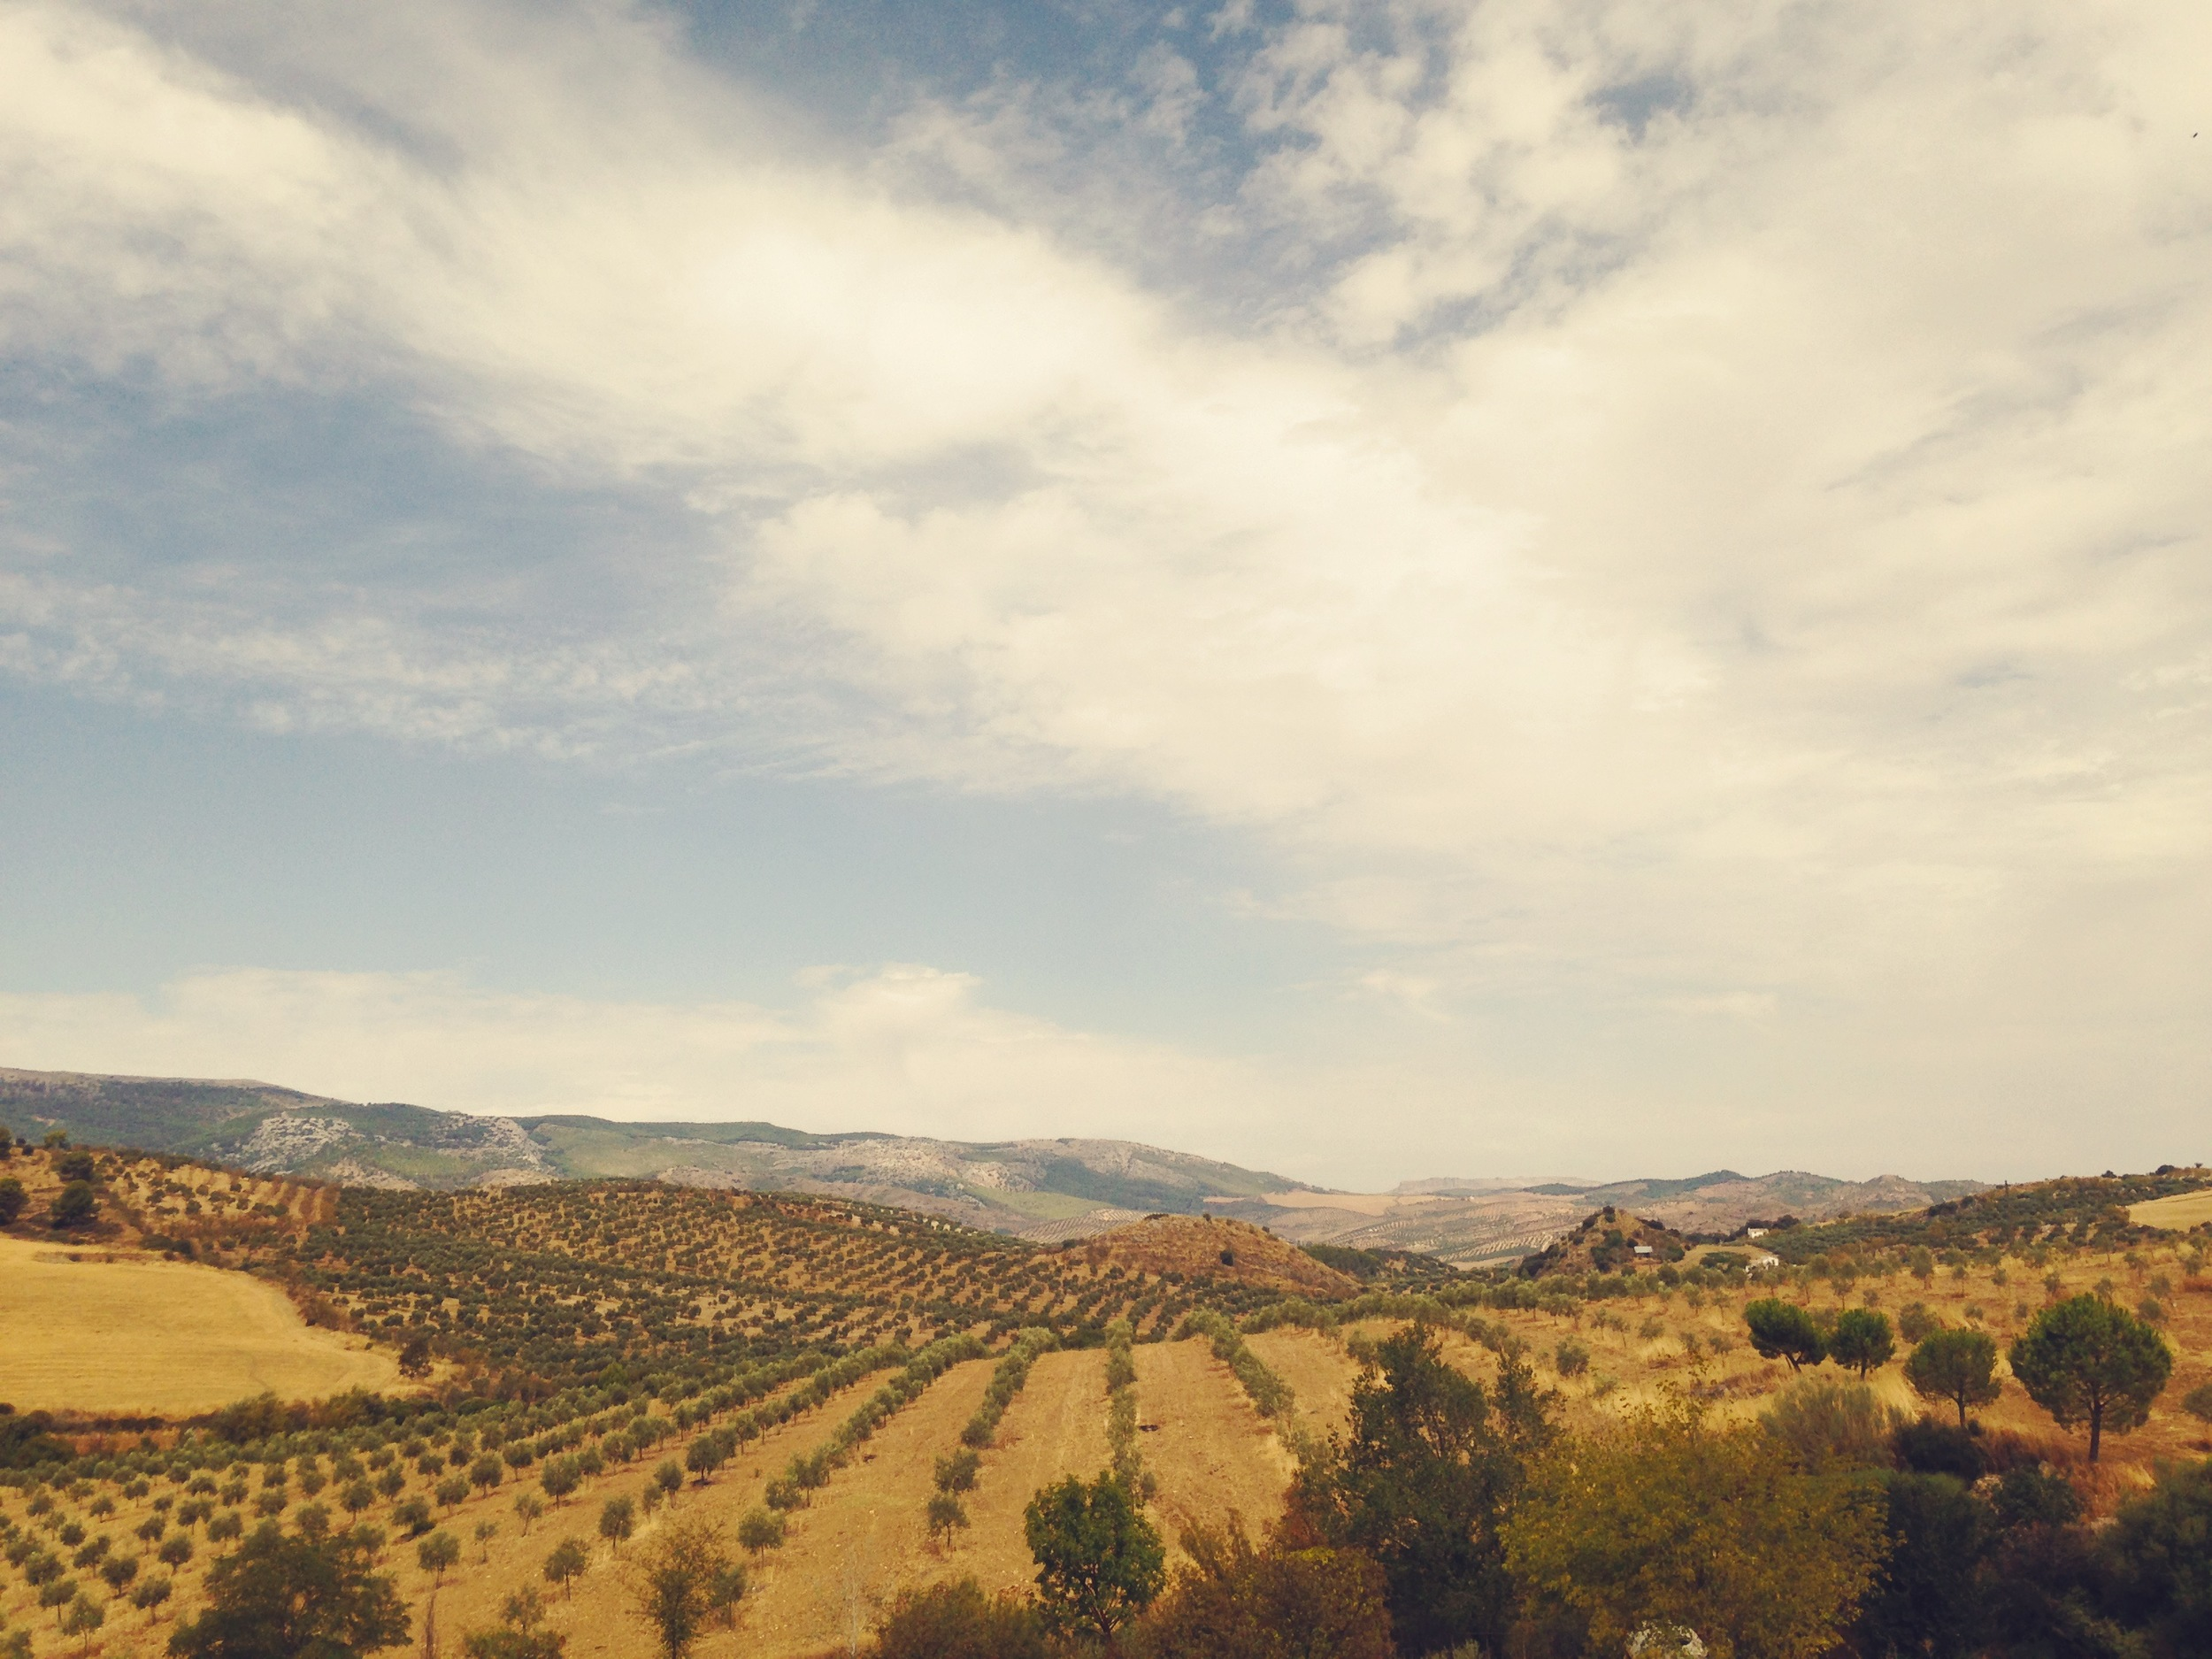 spain retreat olive retreat cleanse relax